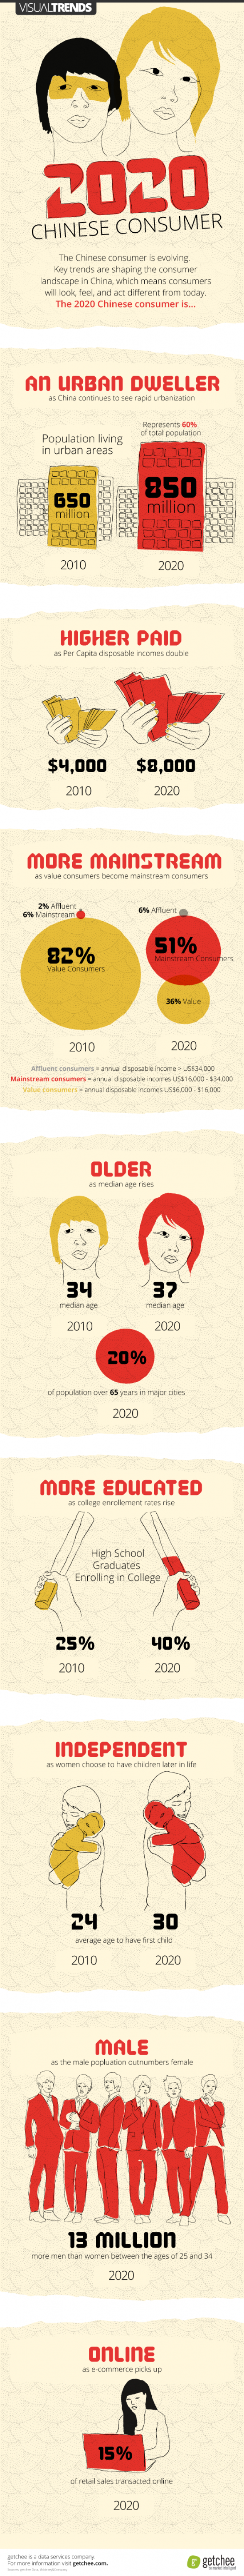 The 2020 Chinese Consumer